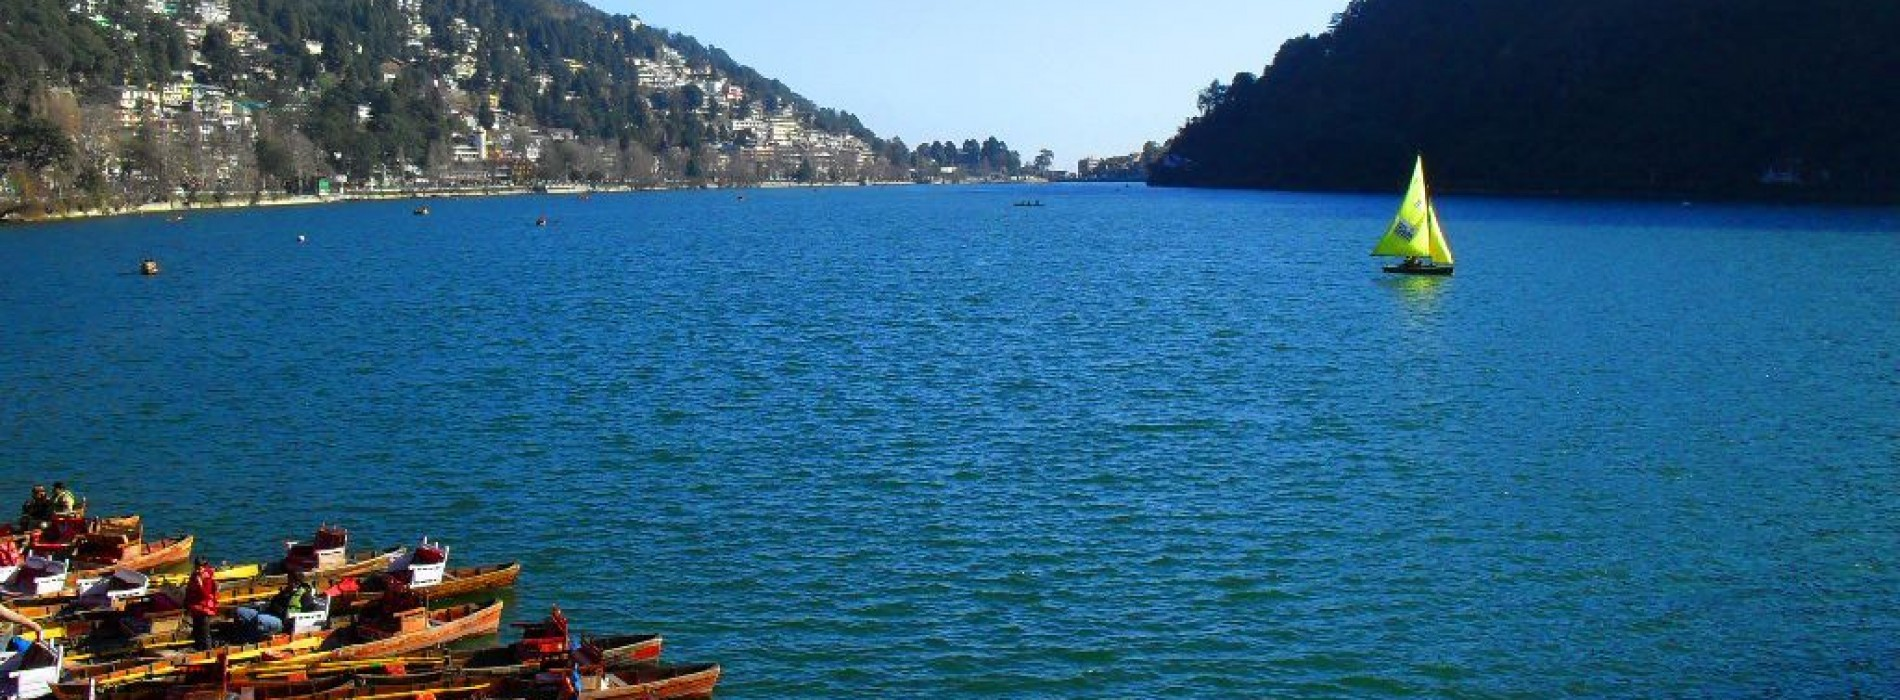 Nainital declared 'housefull' to curb tourist inflow